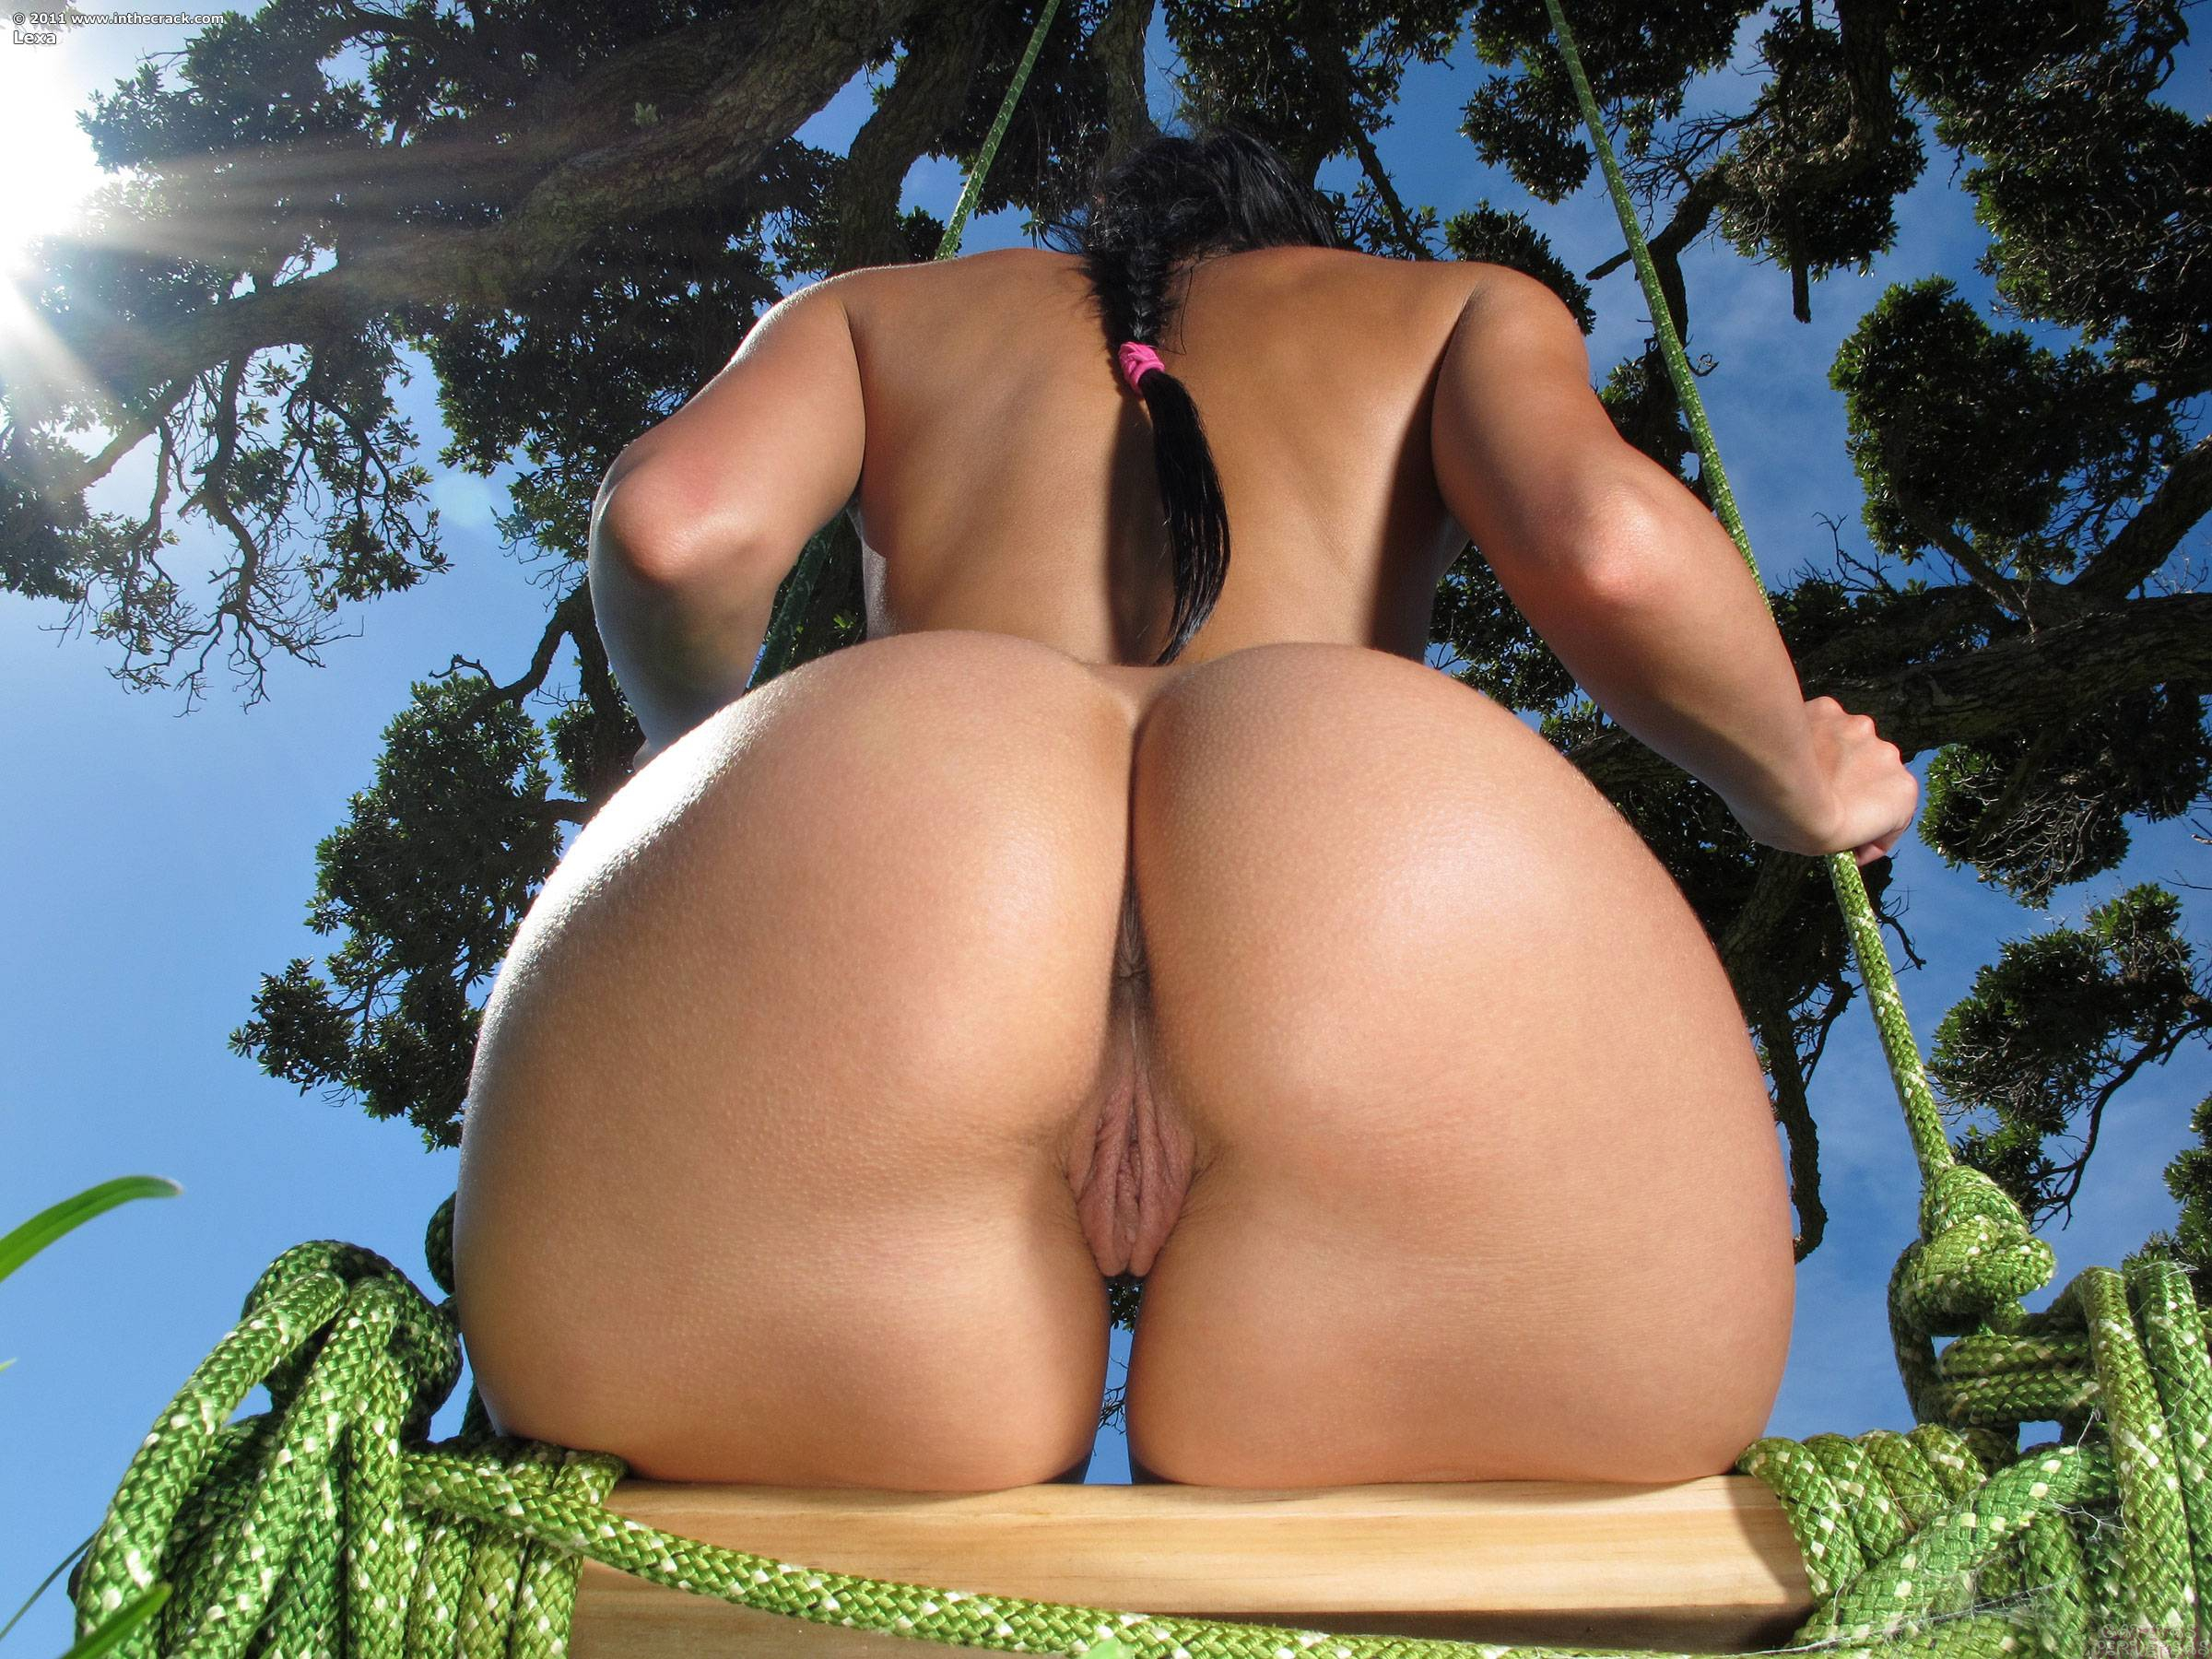 sex-video-naked-big-butts-yoga-spice-porn-pussy